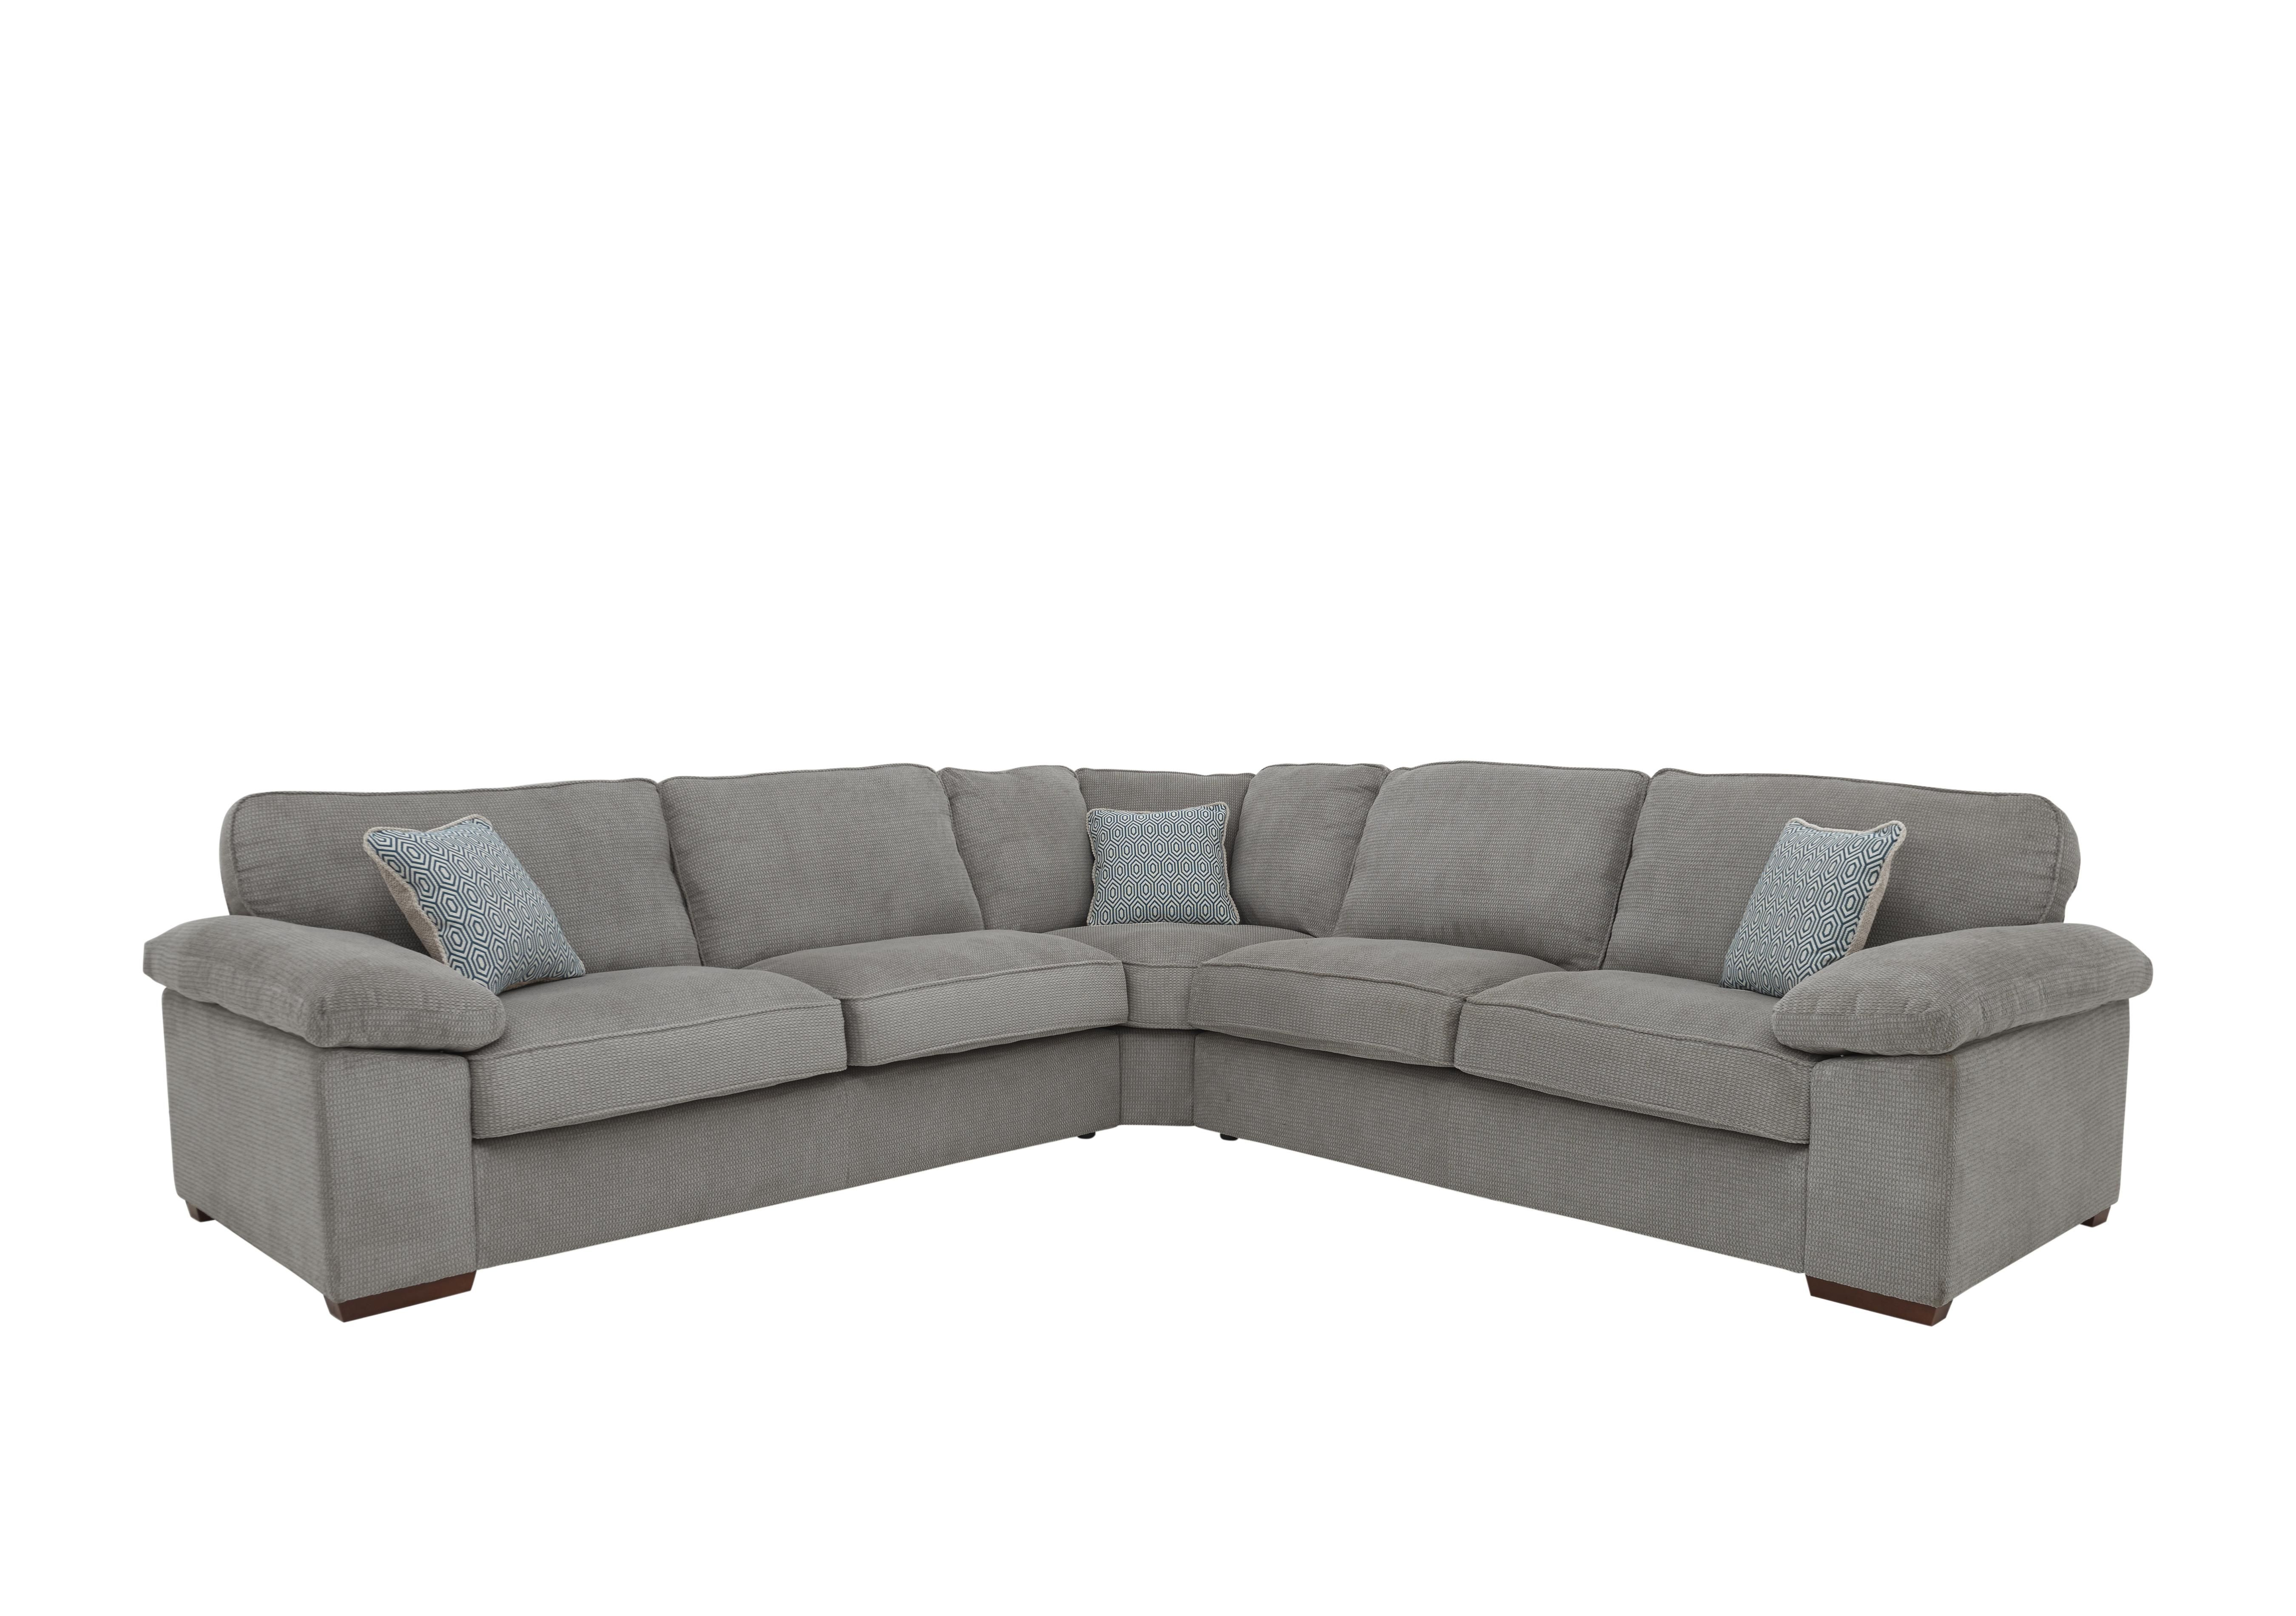 Grey Corner Sofa For You Living Room Grey Corner Sofa Corner Sofa Corner Sofa Chaise